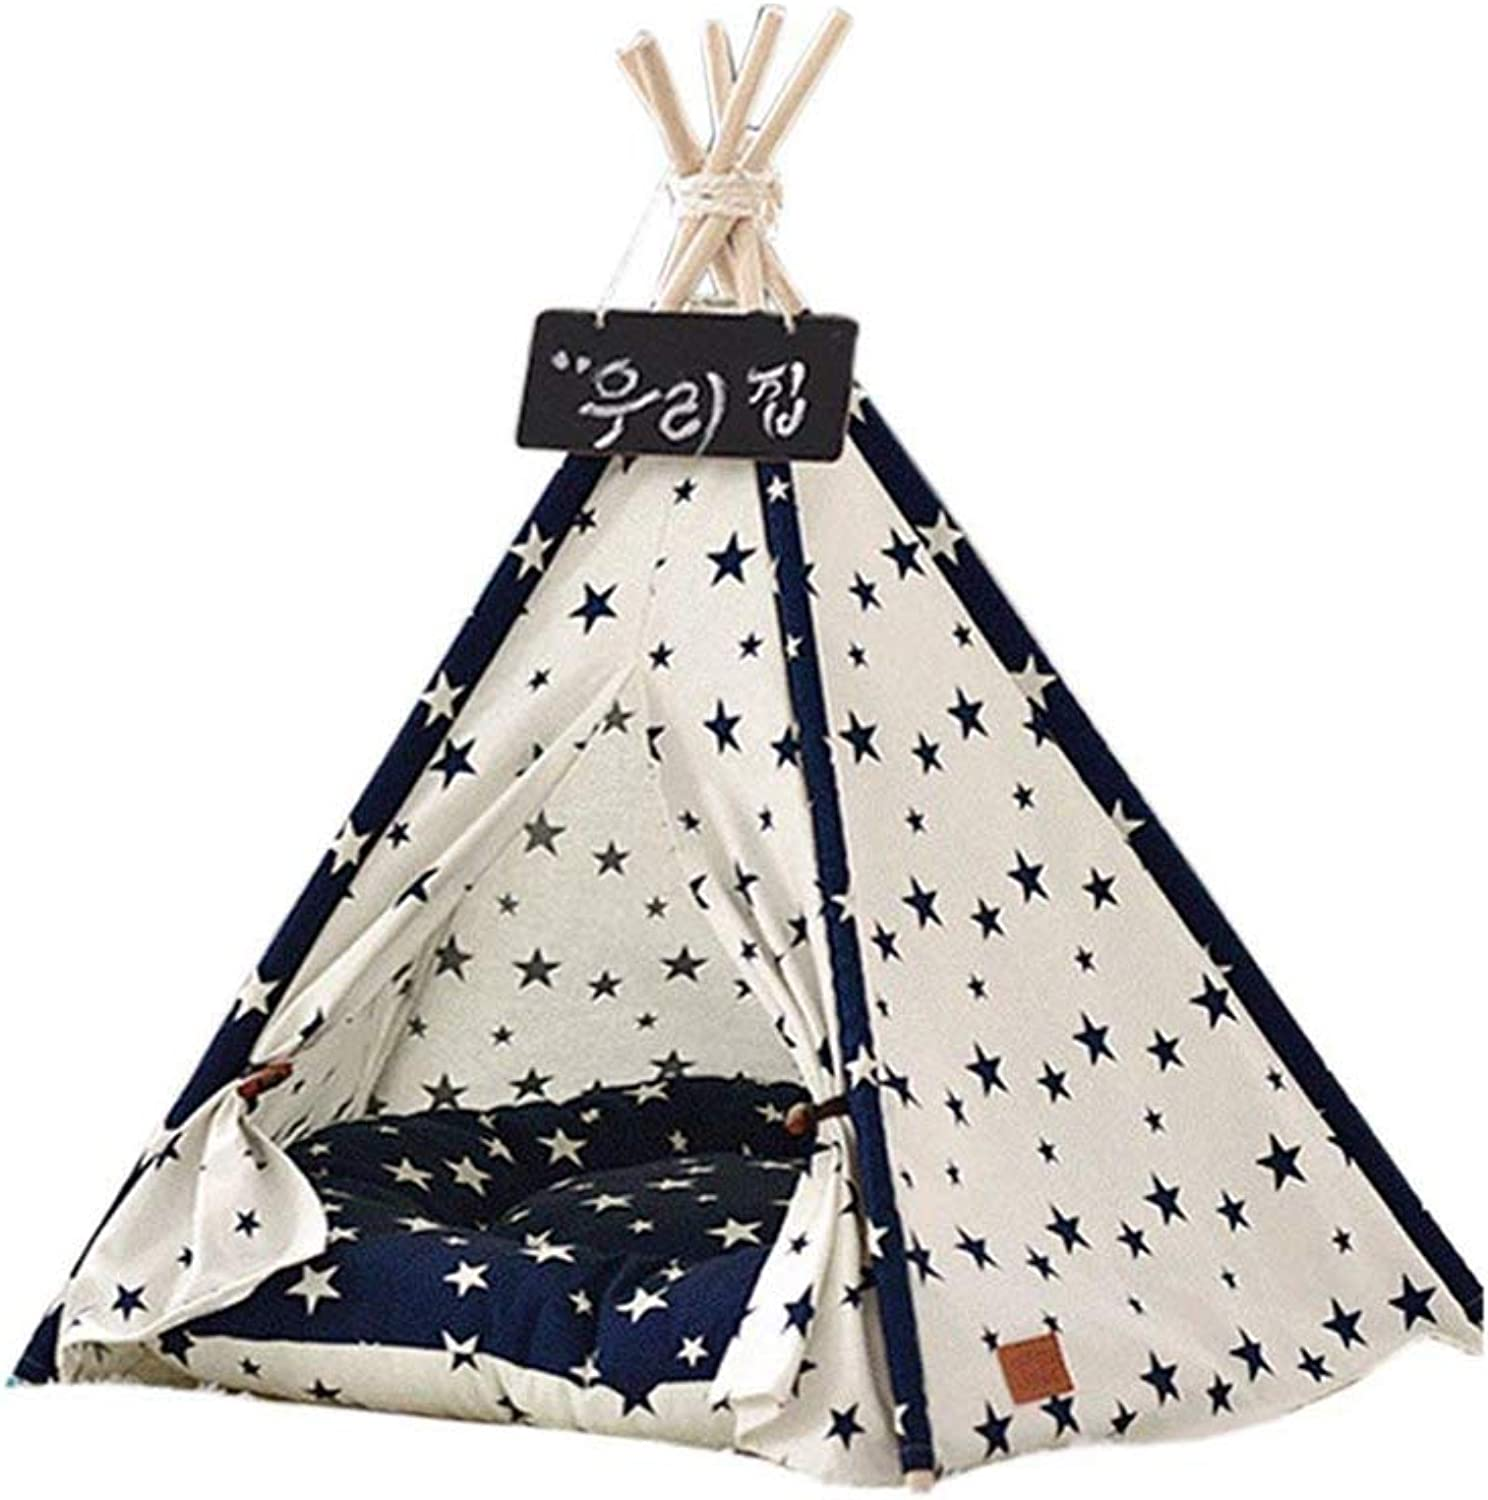 Quner Dog Teepee Bed Portable Blackboard Stars Pattern Tents with Cushion House for Dog Cat Pet and Other Animals